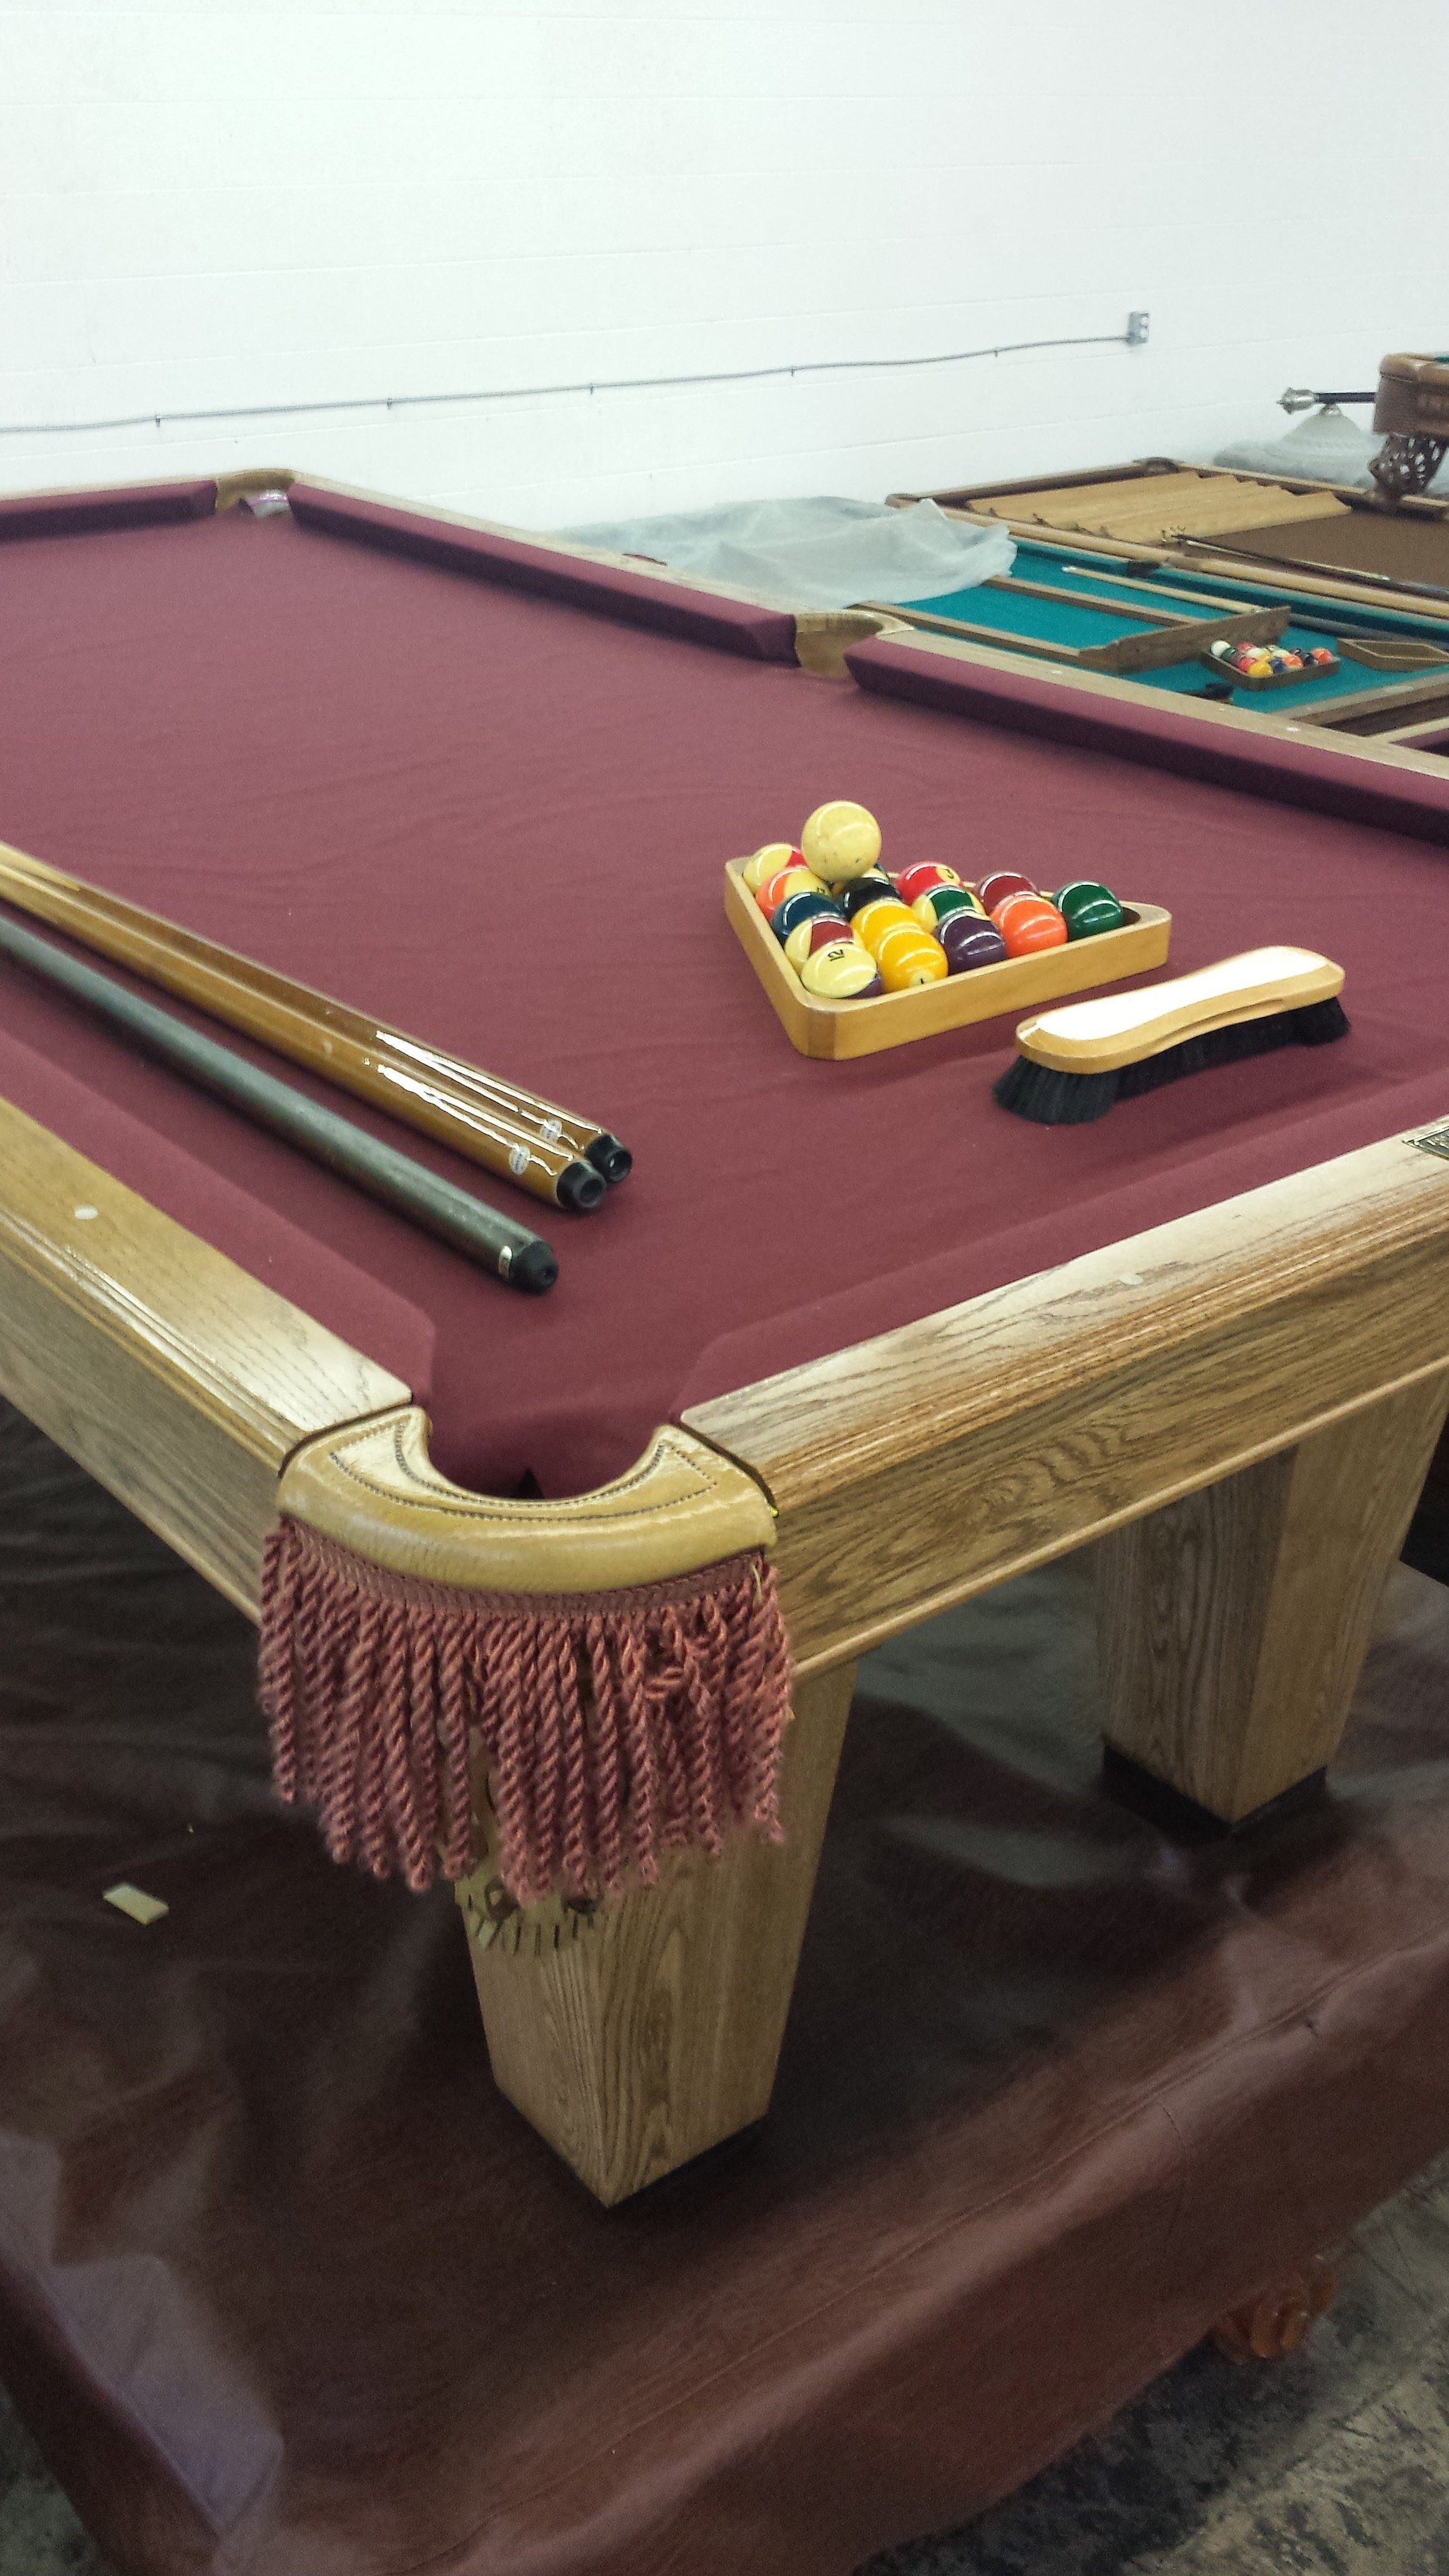 Tomstables Pool Tables 7ft Brunswick Pool Table